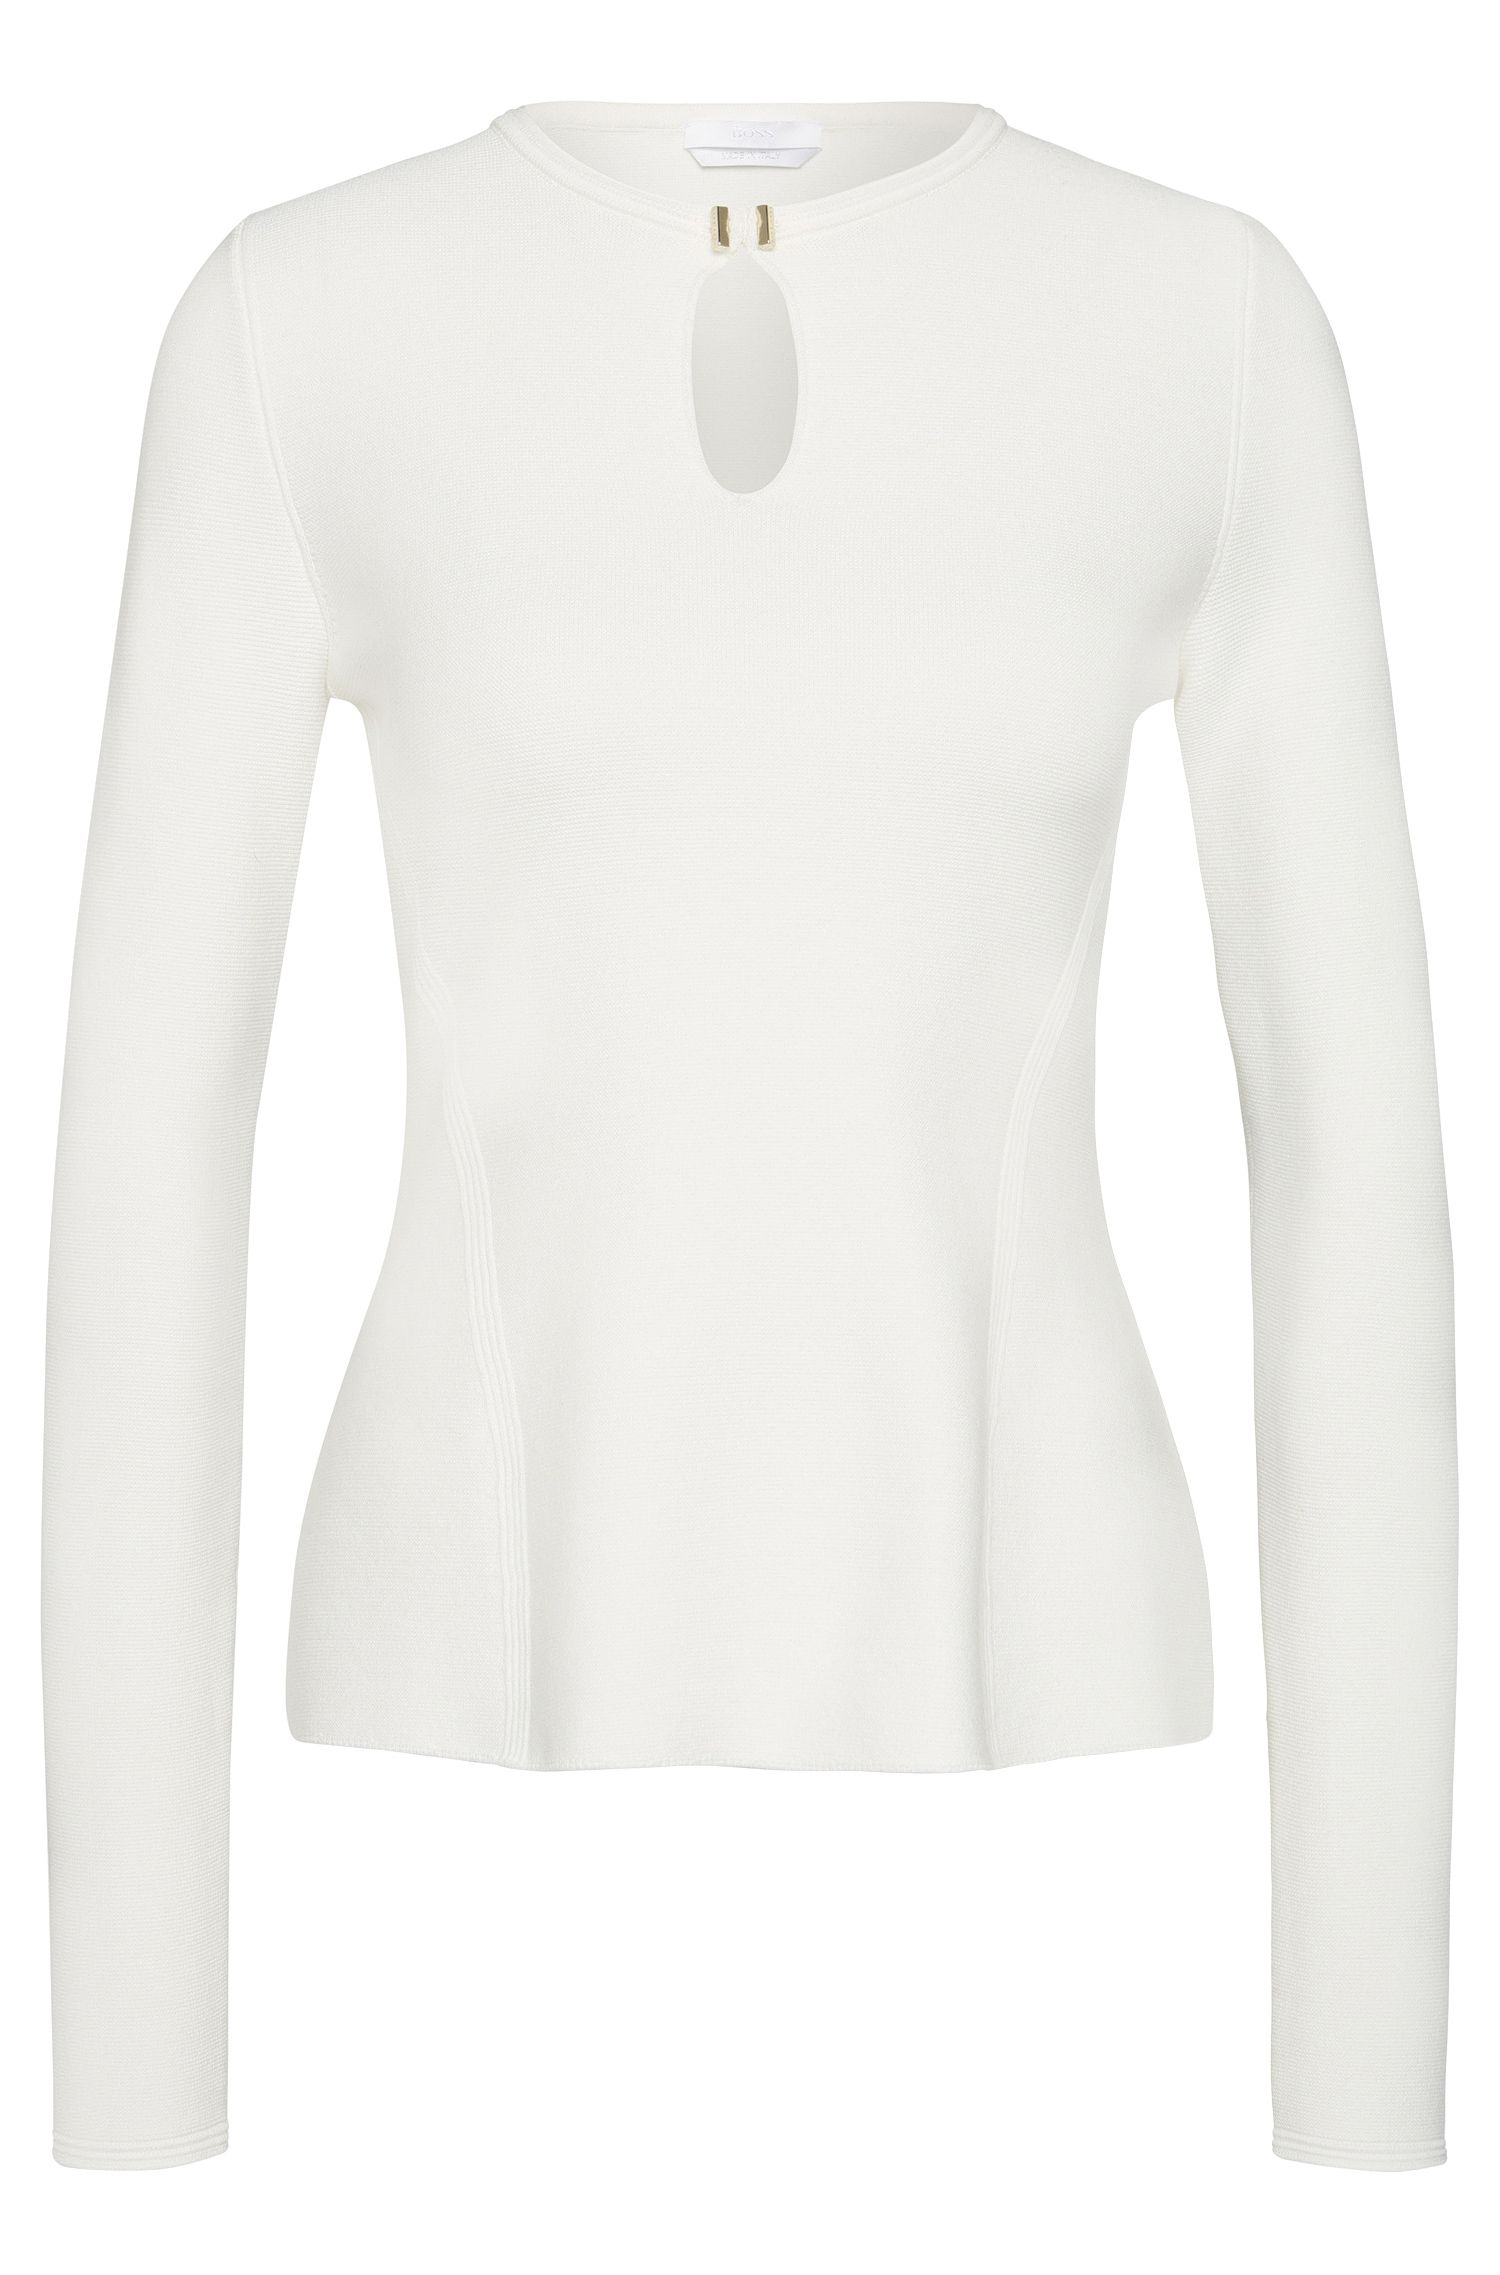 'Federica' | Fitted Jersey Knit Top